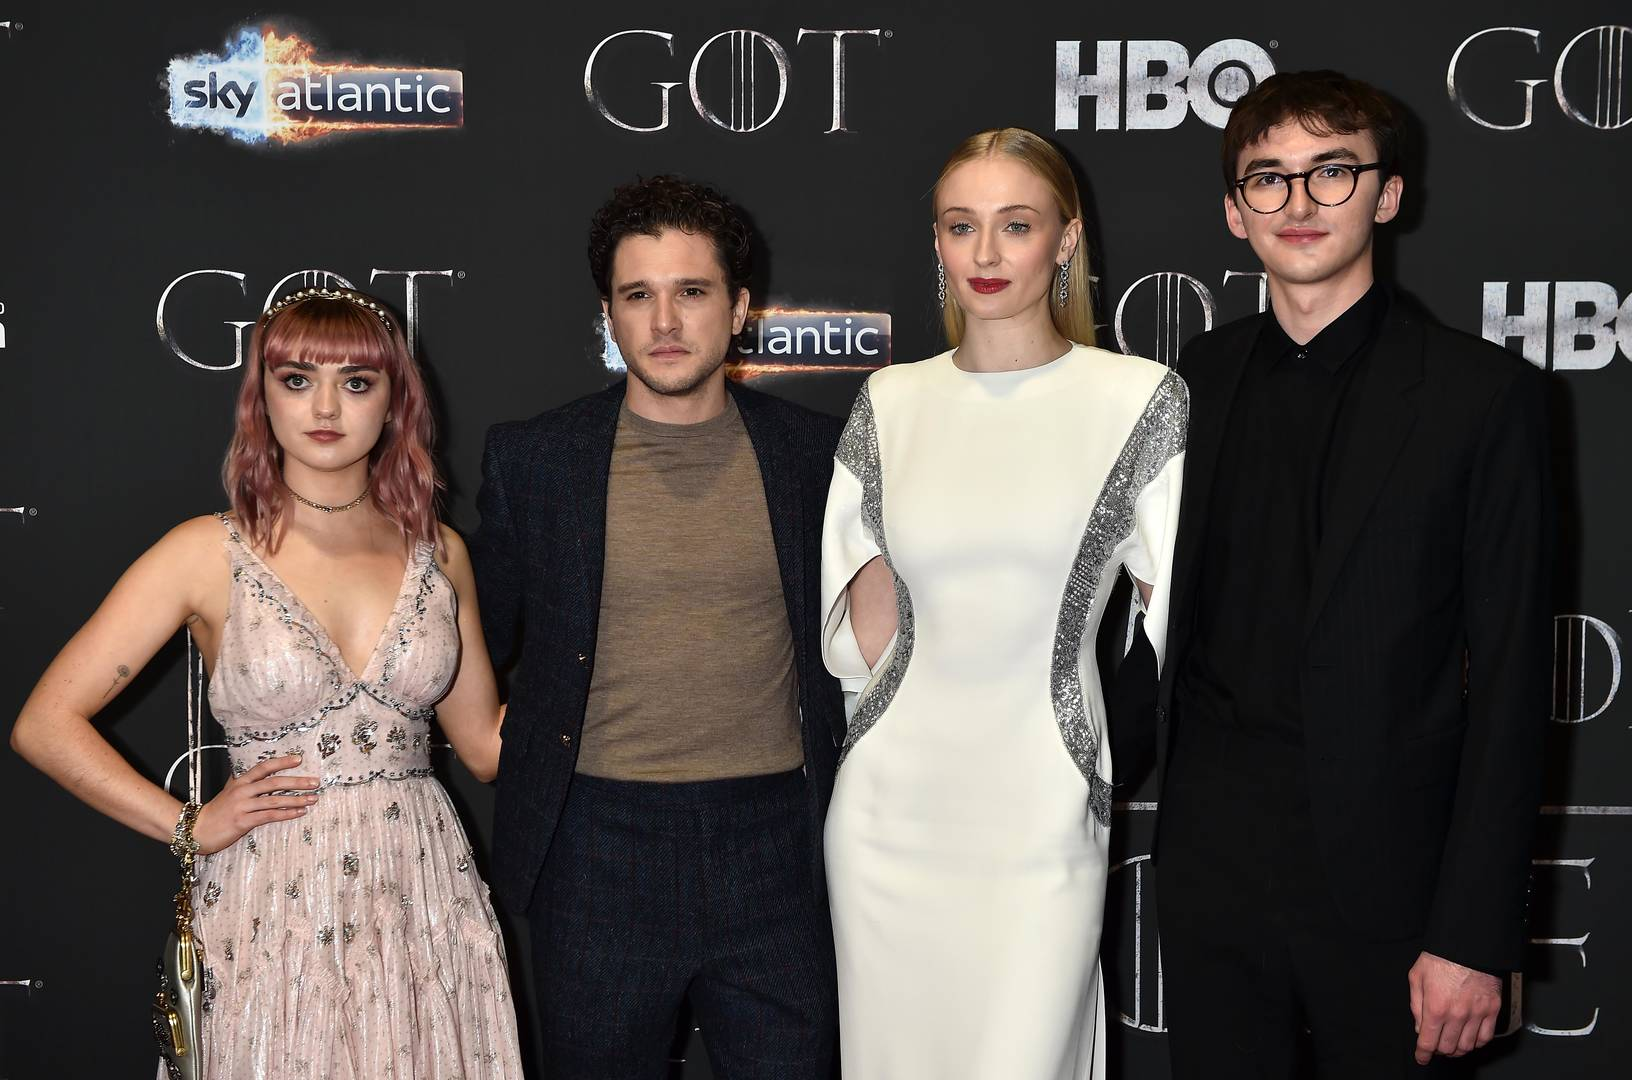 Game of Thrones star reveals regret at season eight - find out why